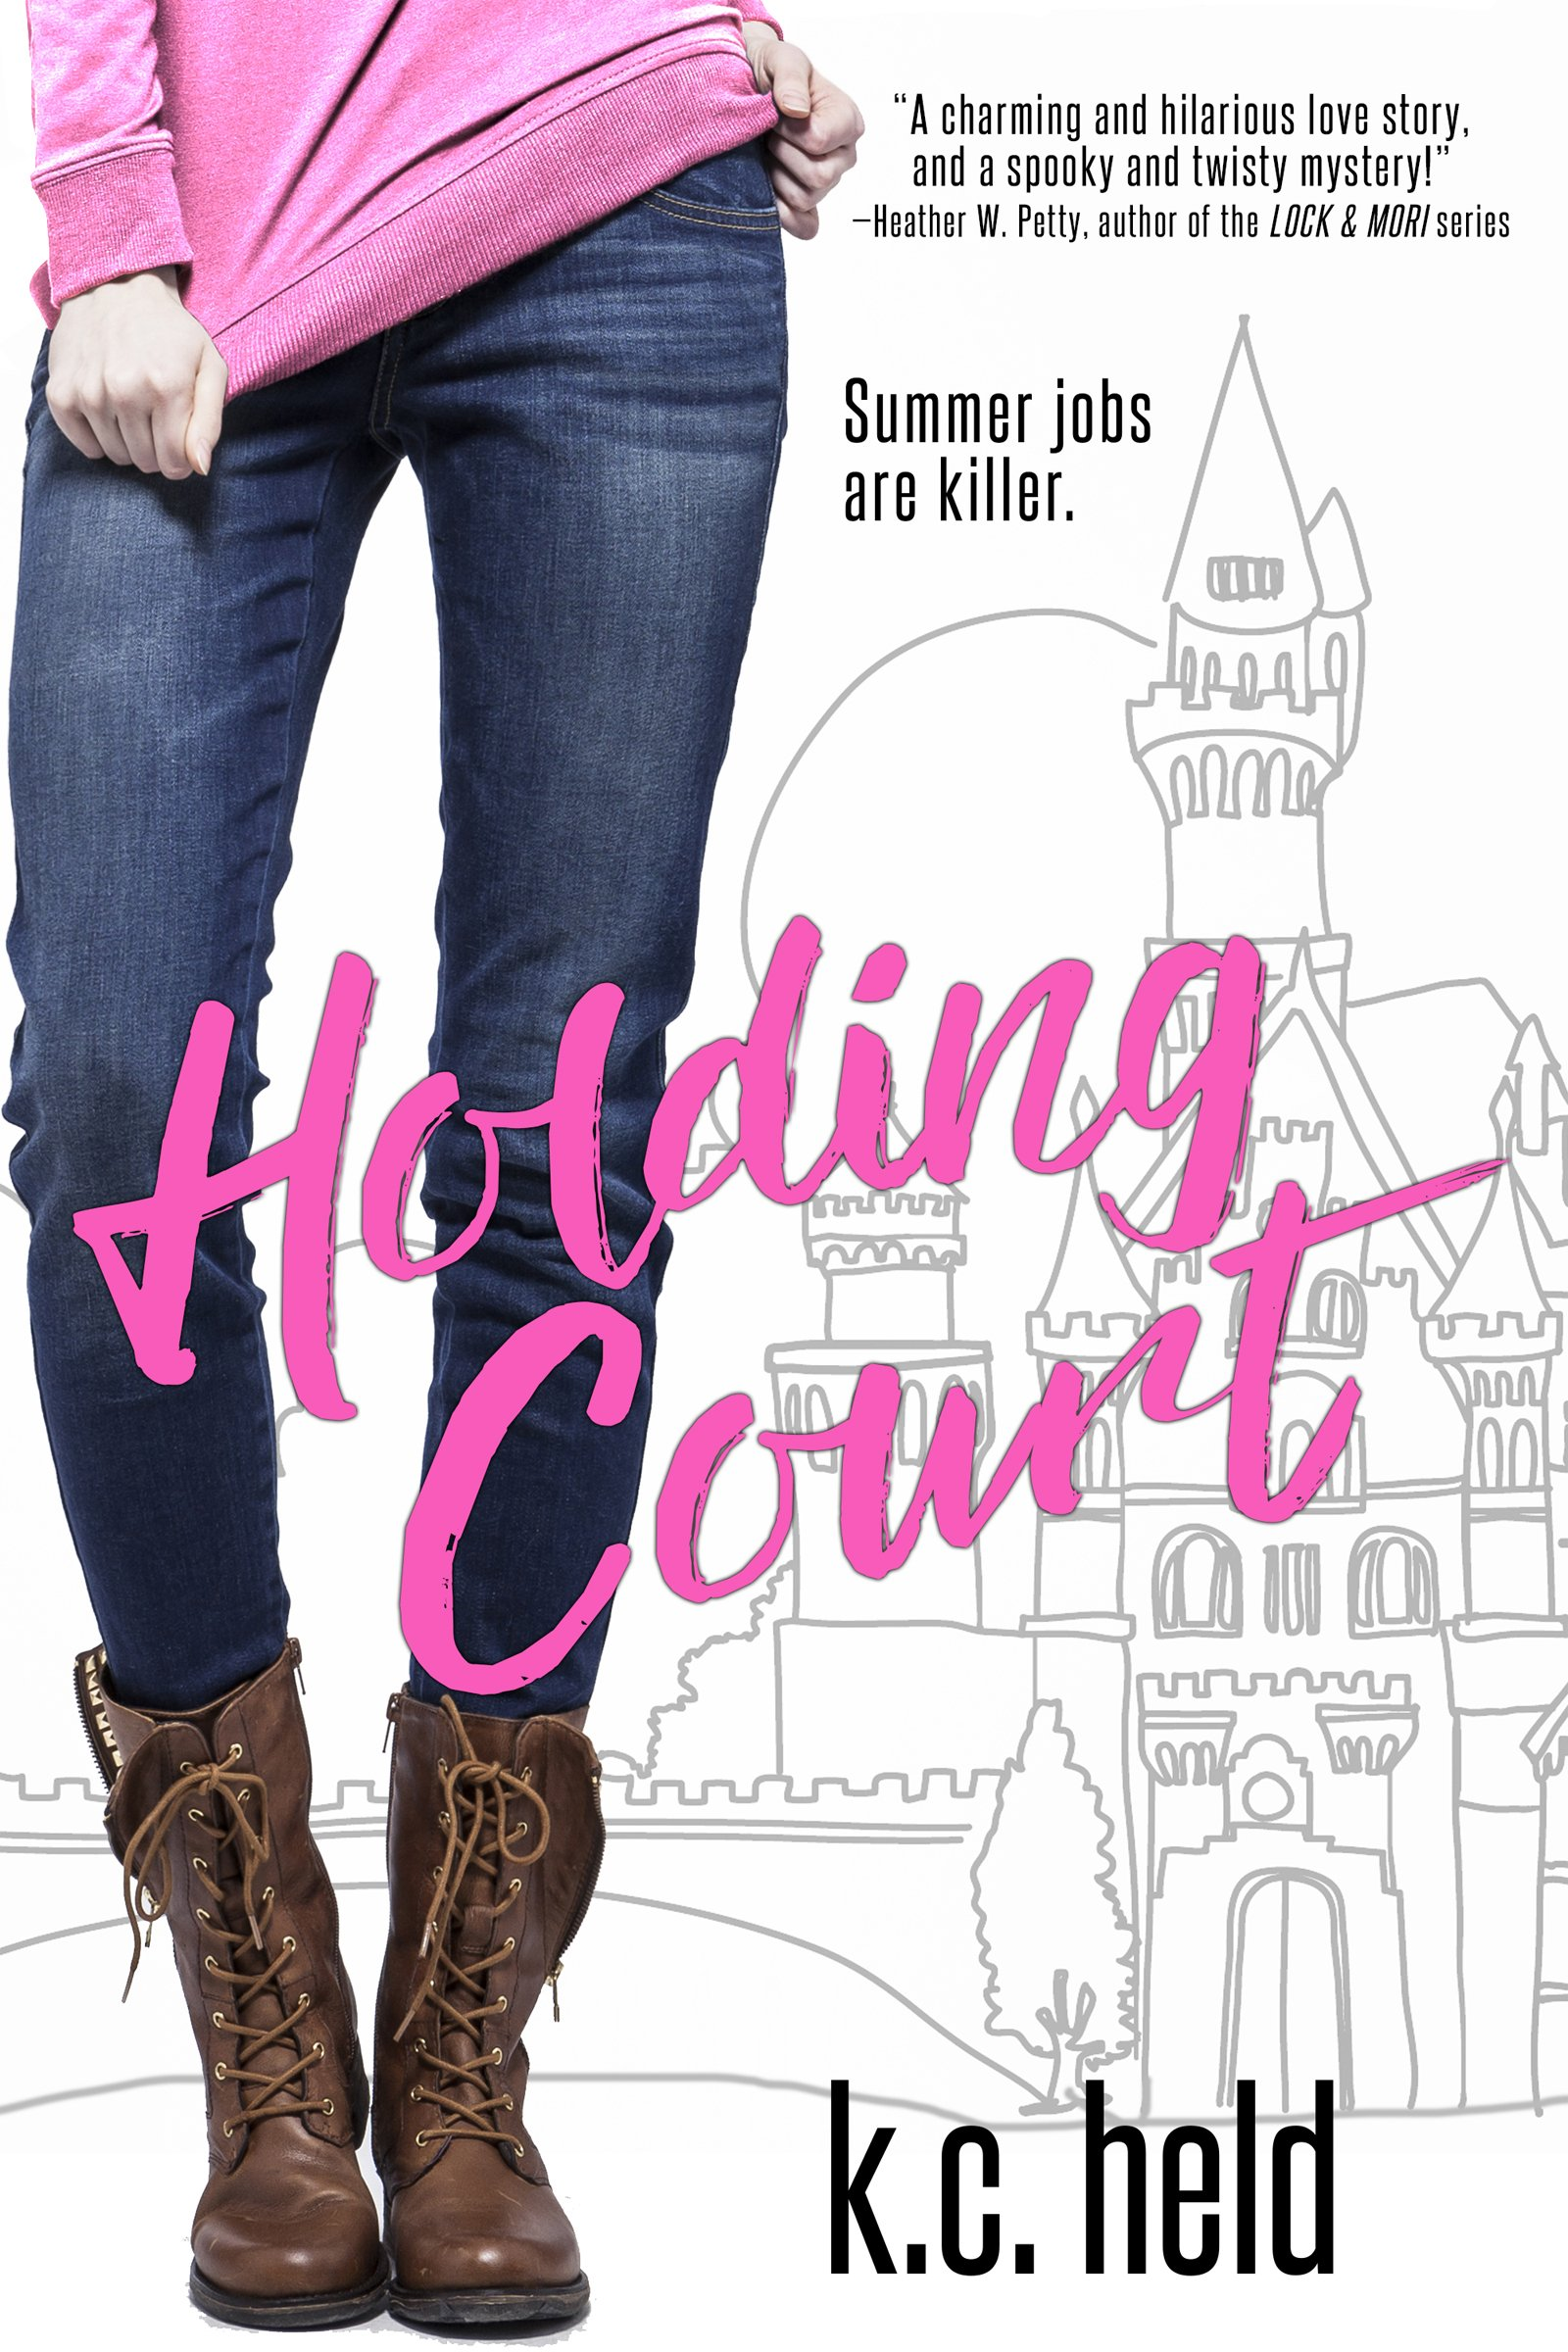 Book Review: Holding Court by K.C. Held